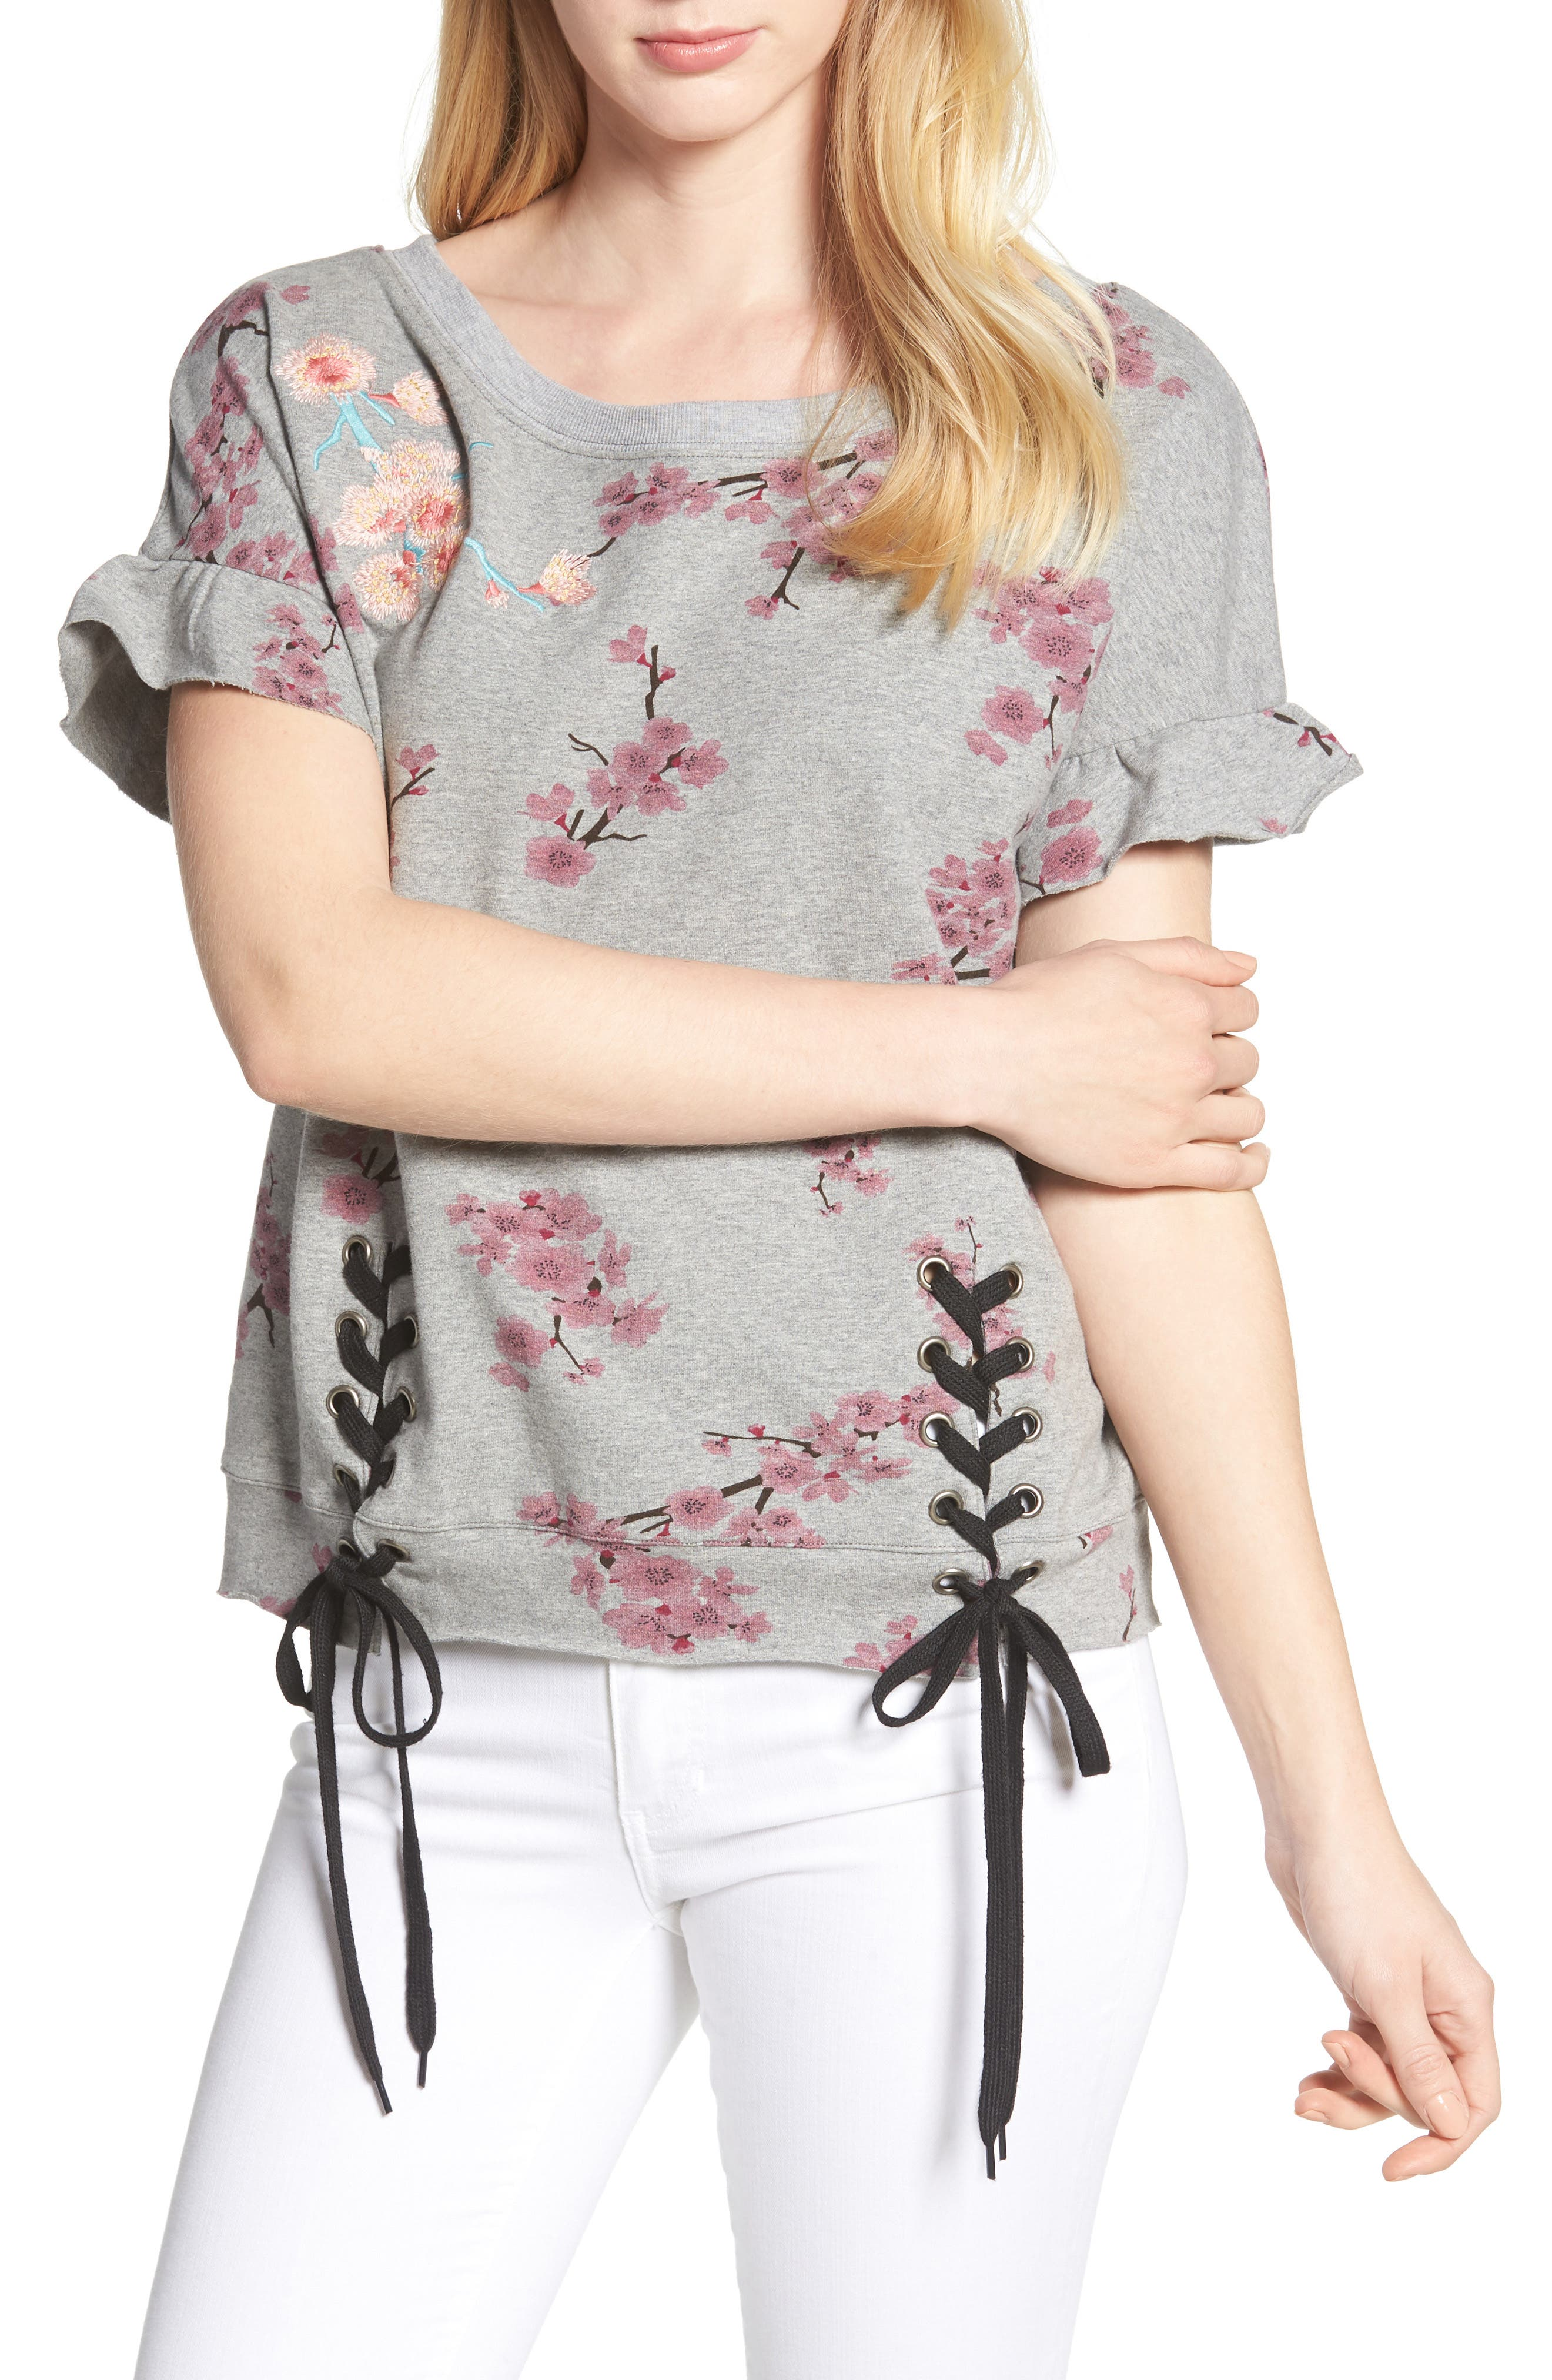 Short Sleeve Lace Up Cherry Blossom Sweatshirt,                         Main,                         color, Grey Cherry Blossom